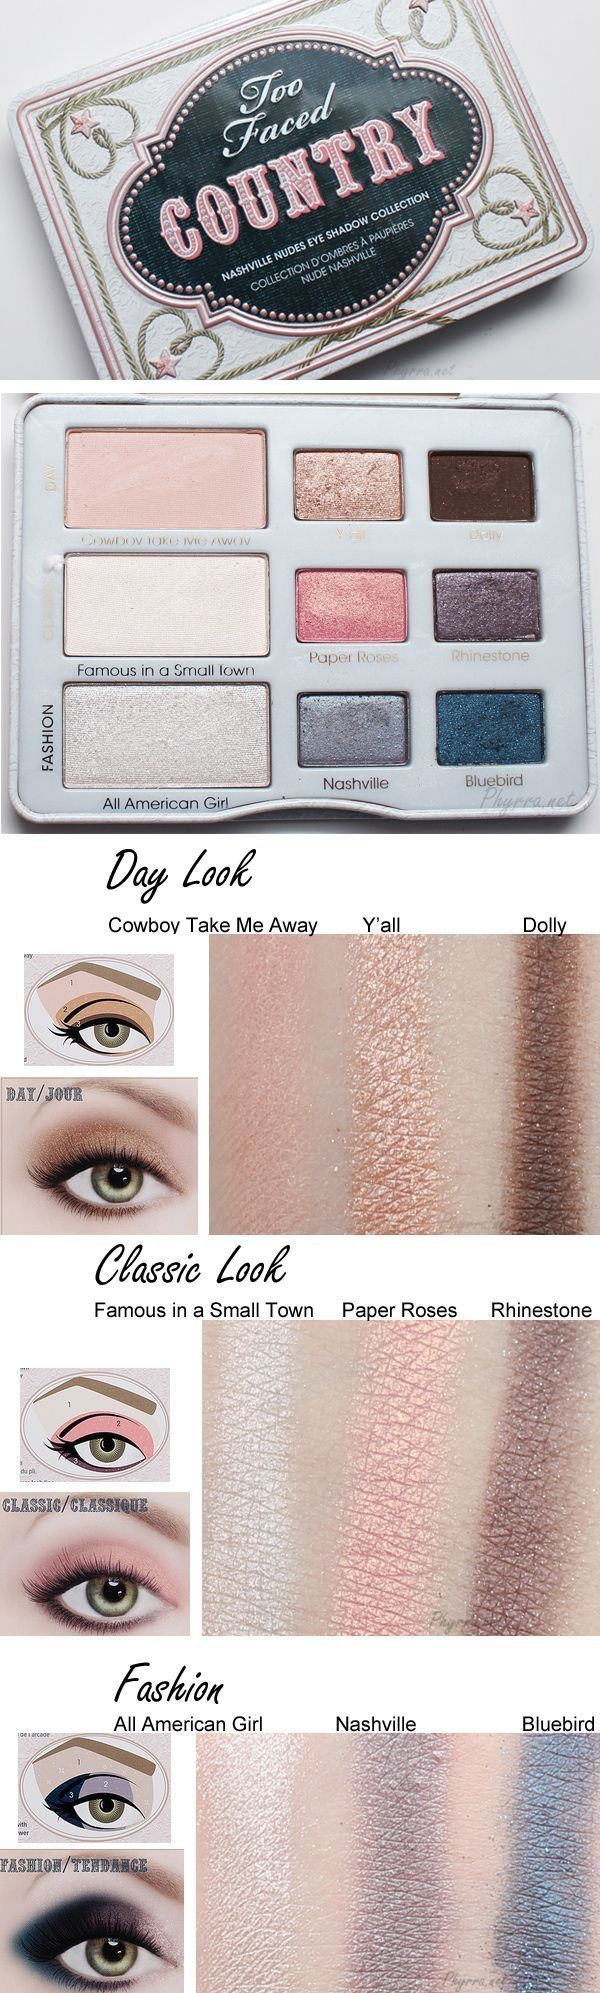 Too Faced Country Nashville Nudes Eye Shadow Palette Collection. 3 Steps, 3 Looks, 3 Minutes.  $25.00